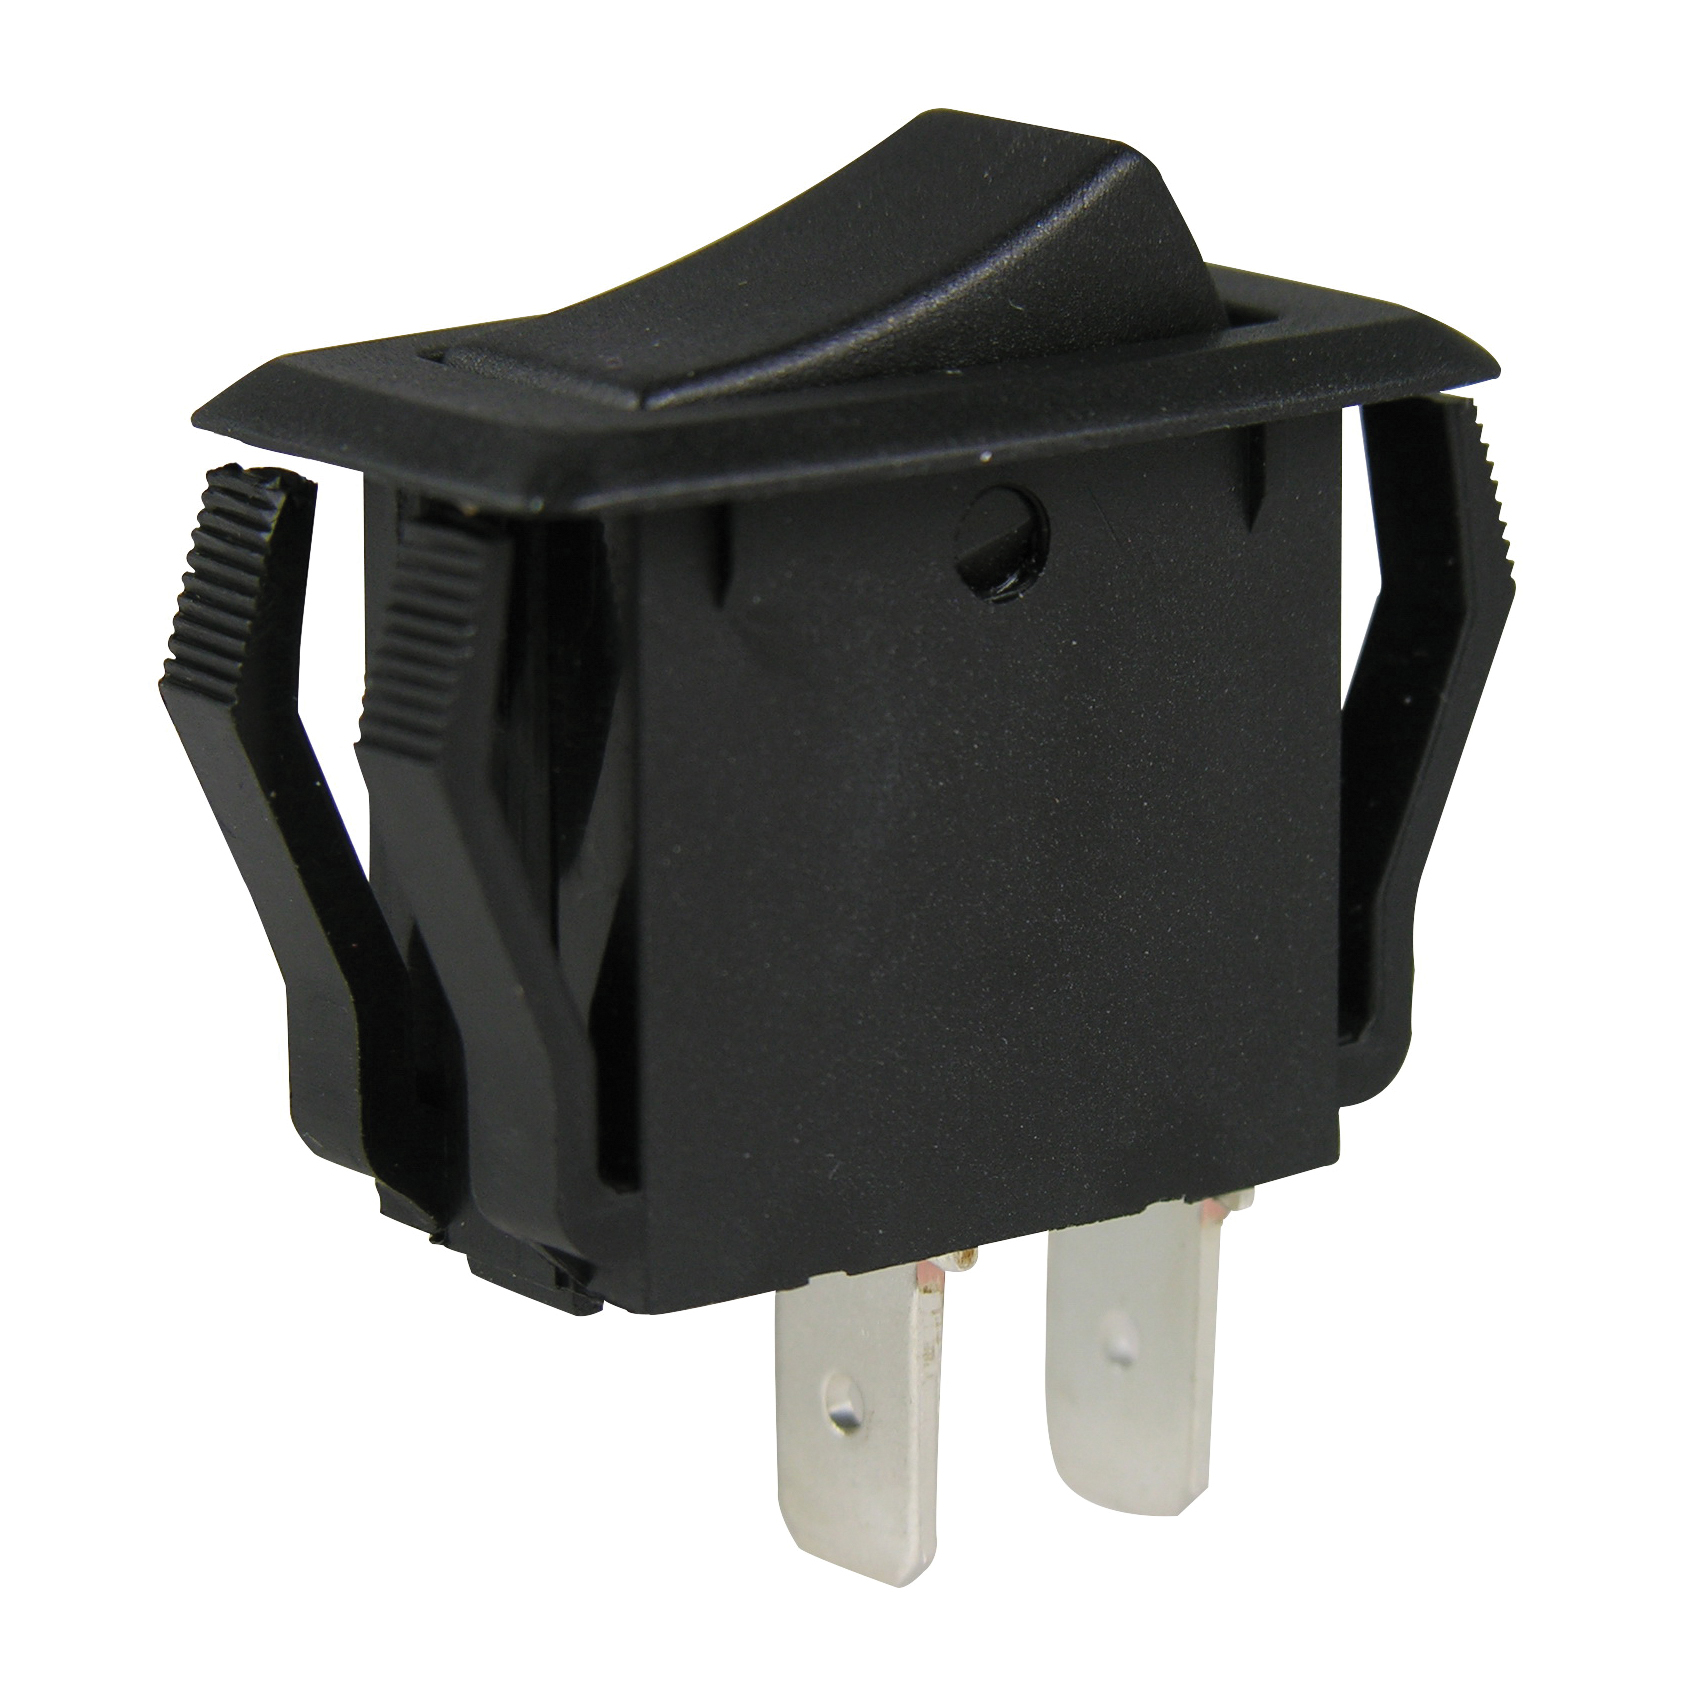 Picture of GB GSW Series GSW-41 Rocker Switch, 8/16 A, 125/250 V, SPST, 0.55 x 1.125 in Panel Cutout, Nylon Housing Material